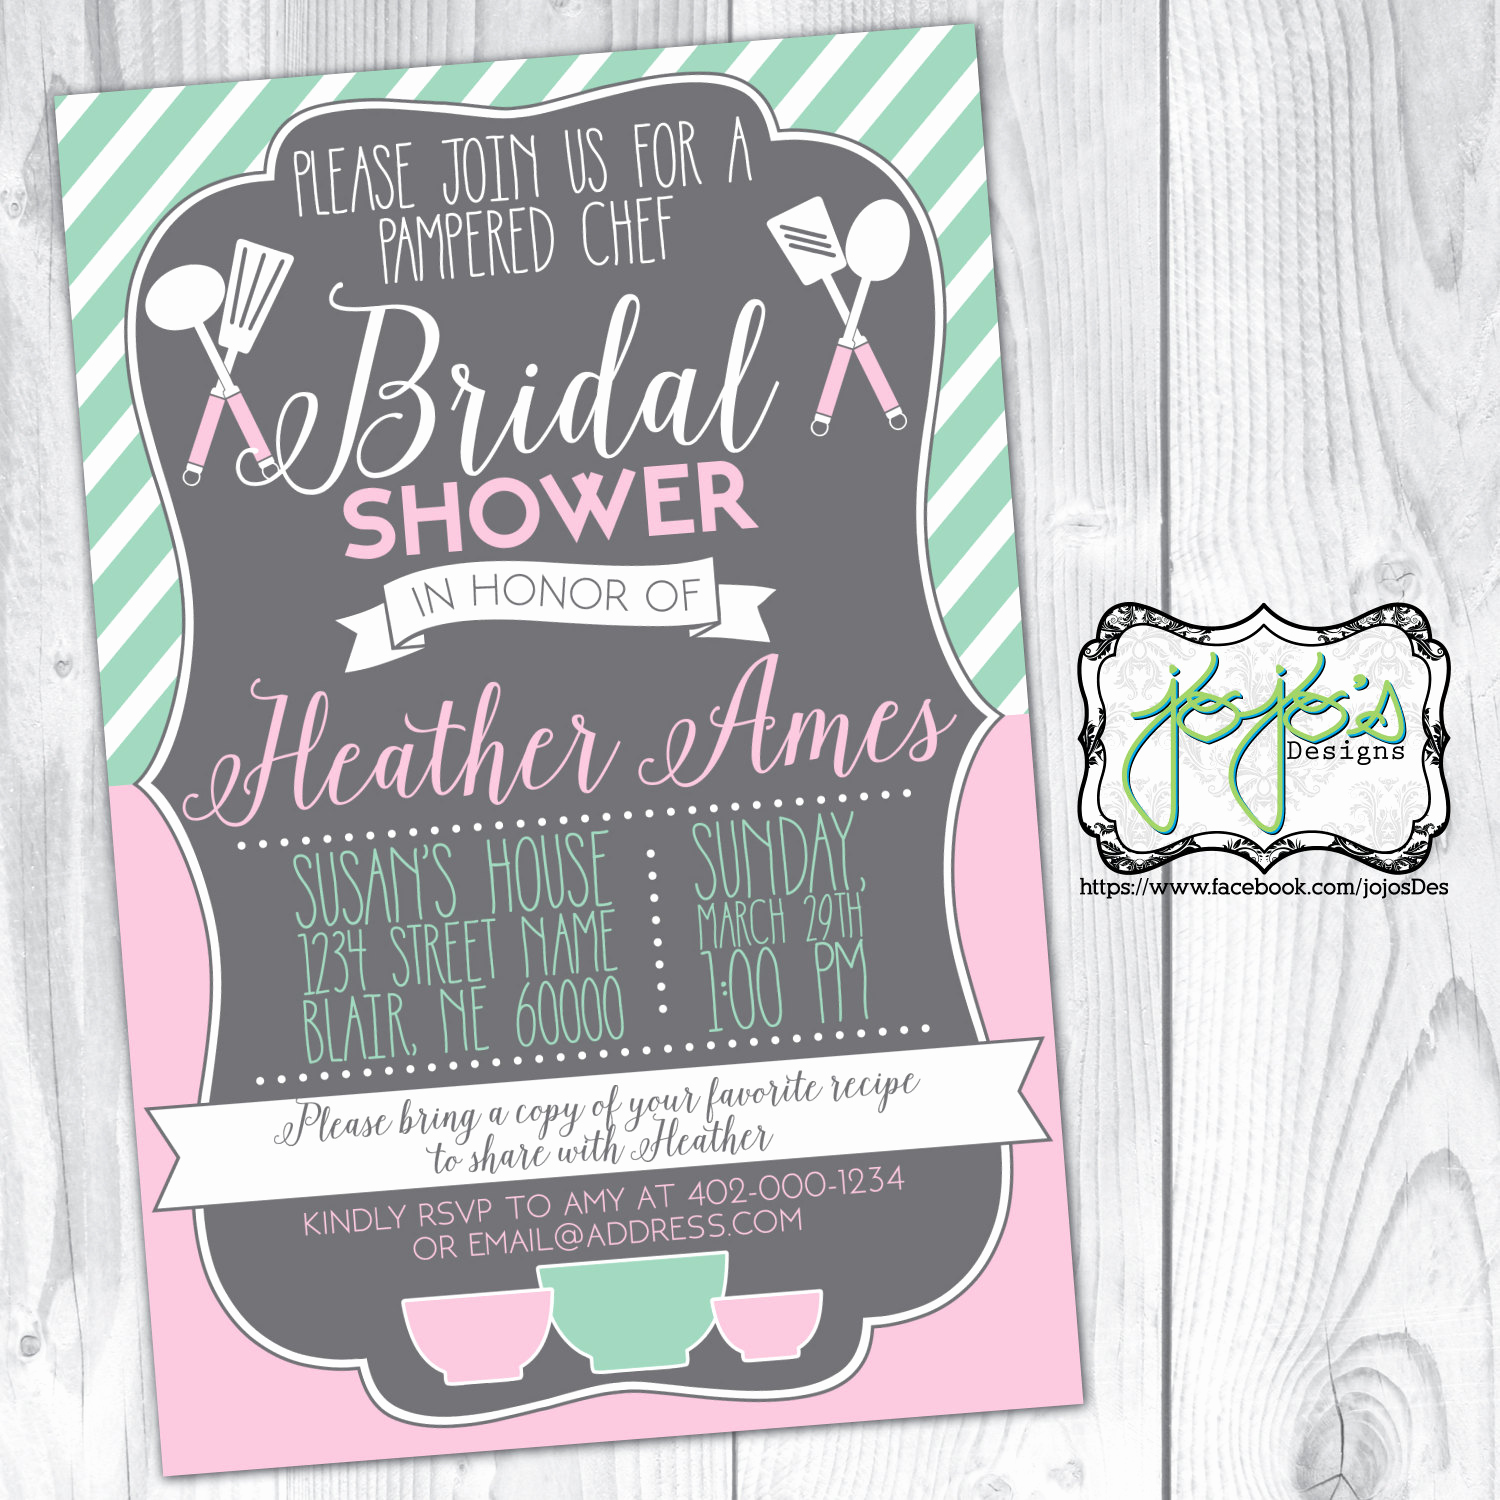 Pampered Chef Bridal Shower Invitation Lovely Pampered Chef Bridal Shower Invitation Blush Pink & Mint